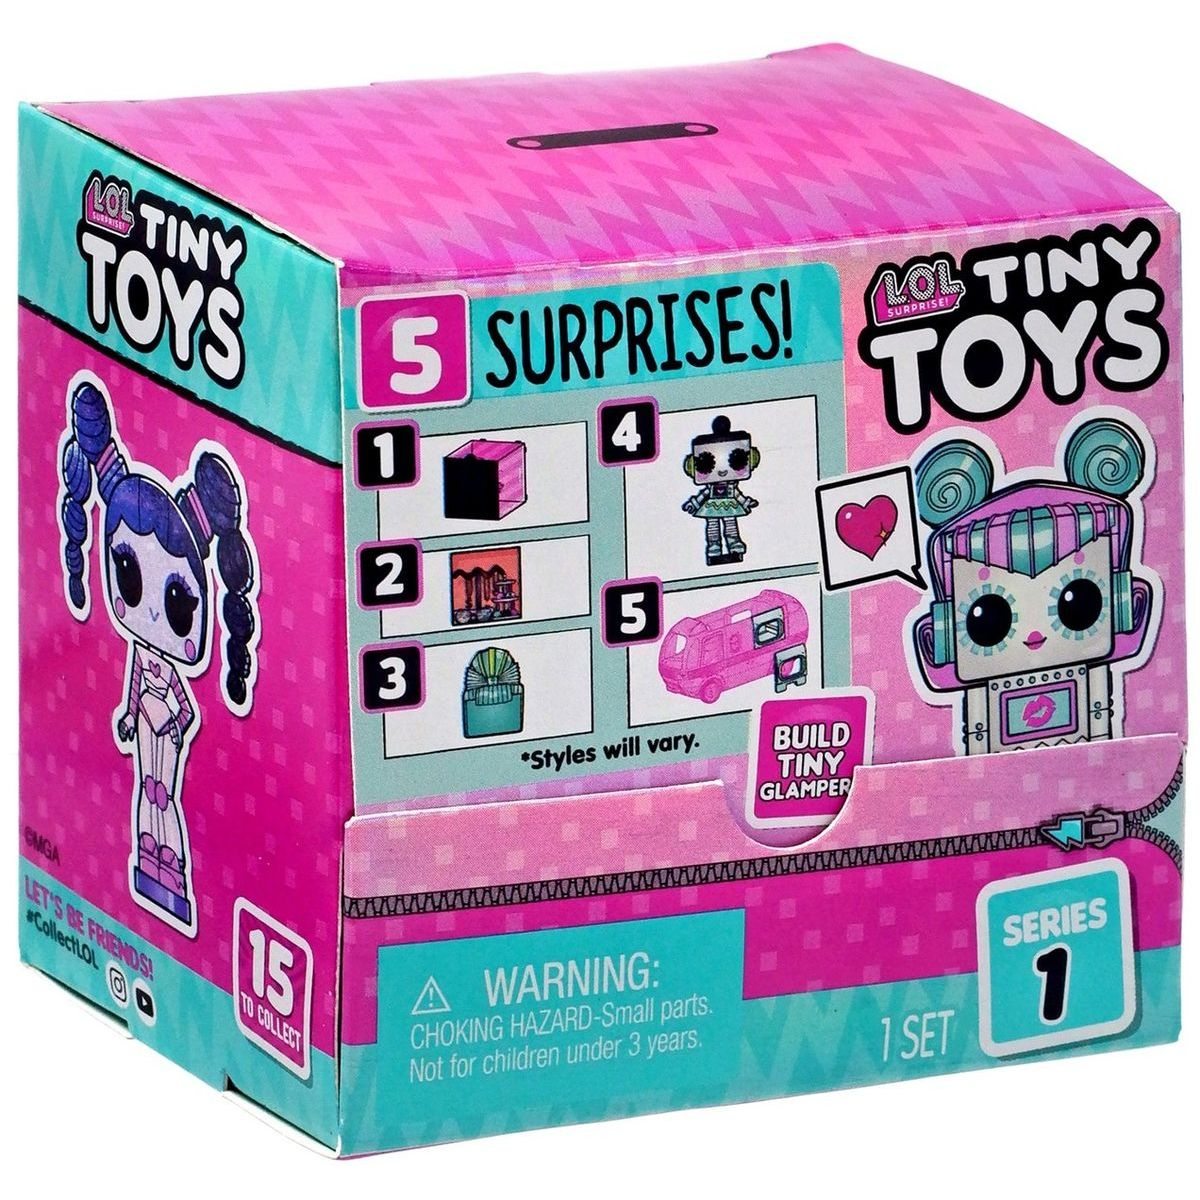 L.O.L. Surprise Mini panenky Tiny Toys